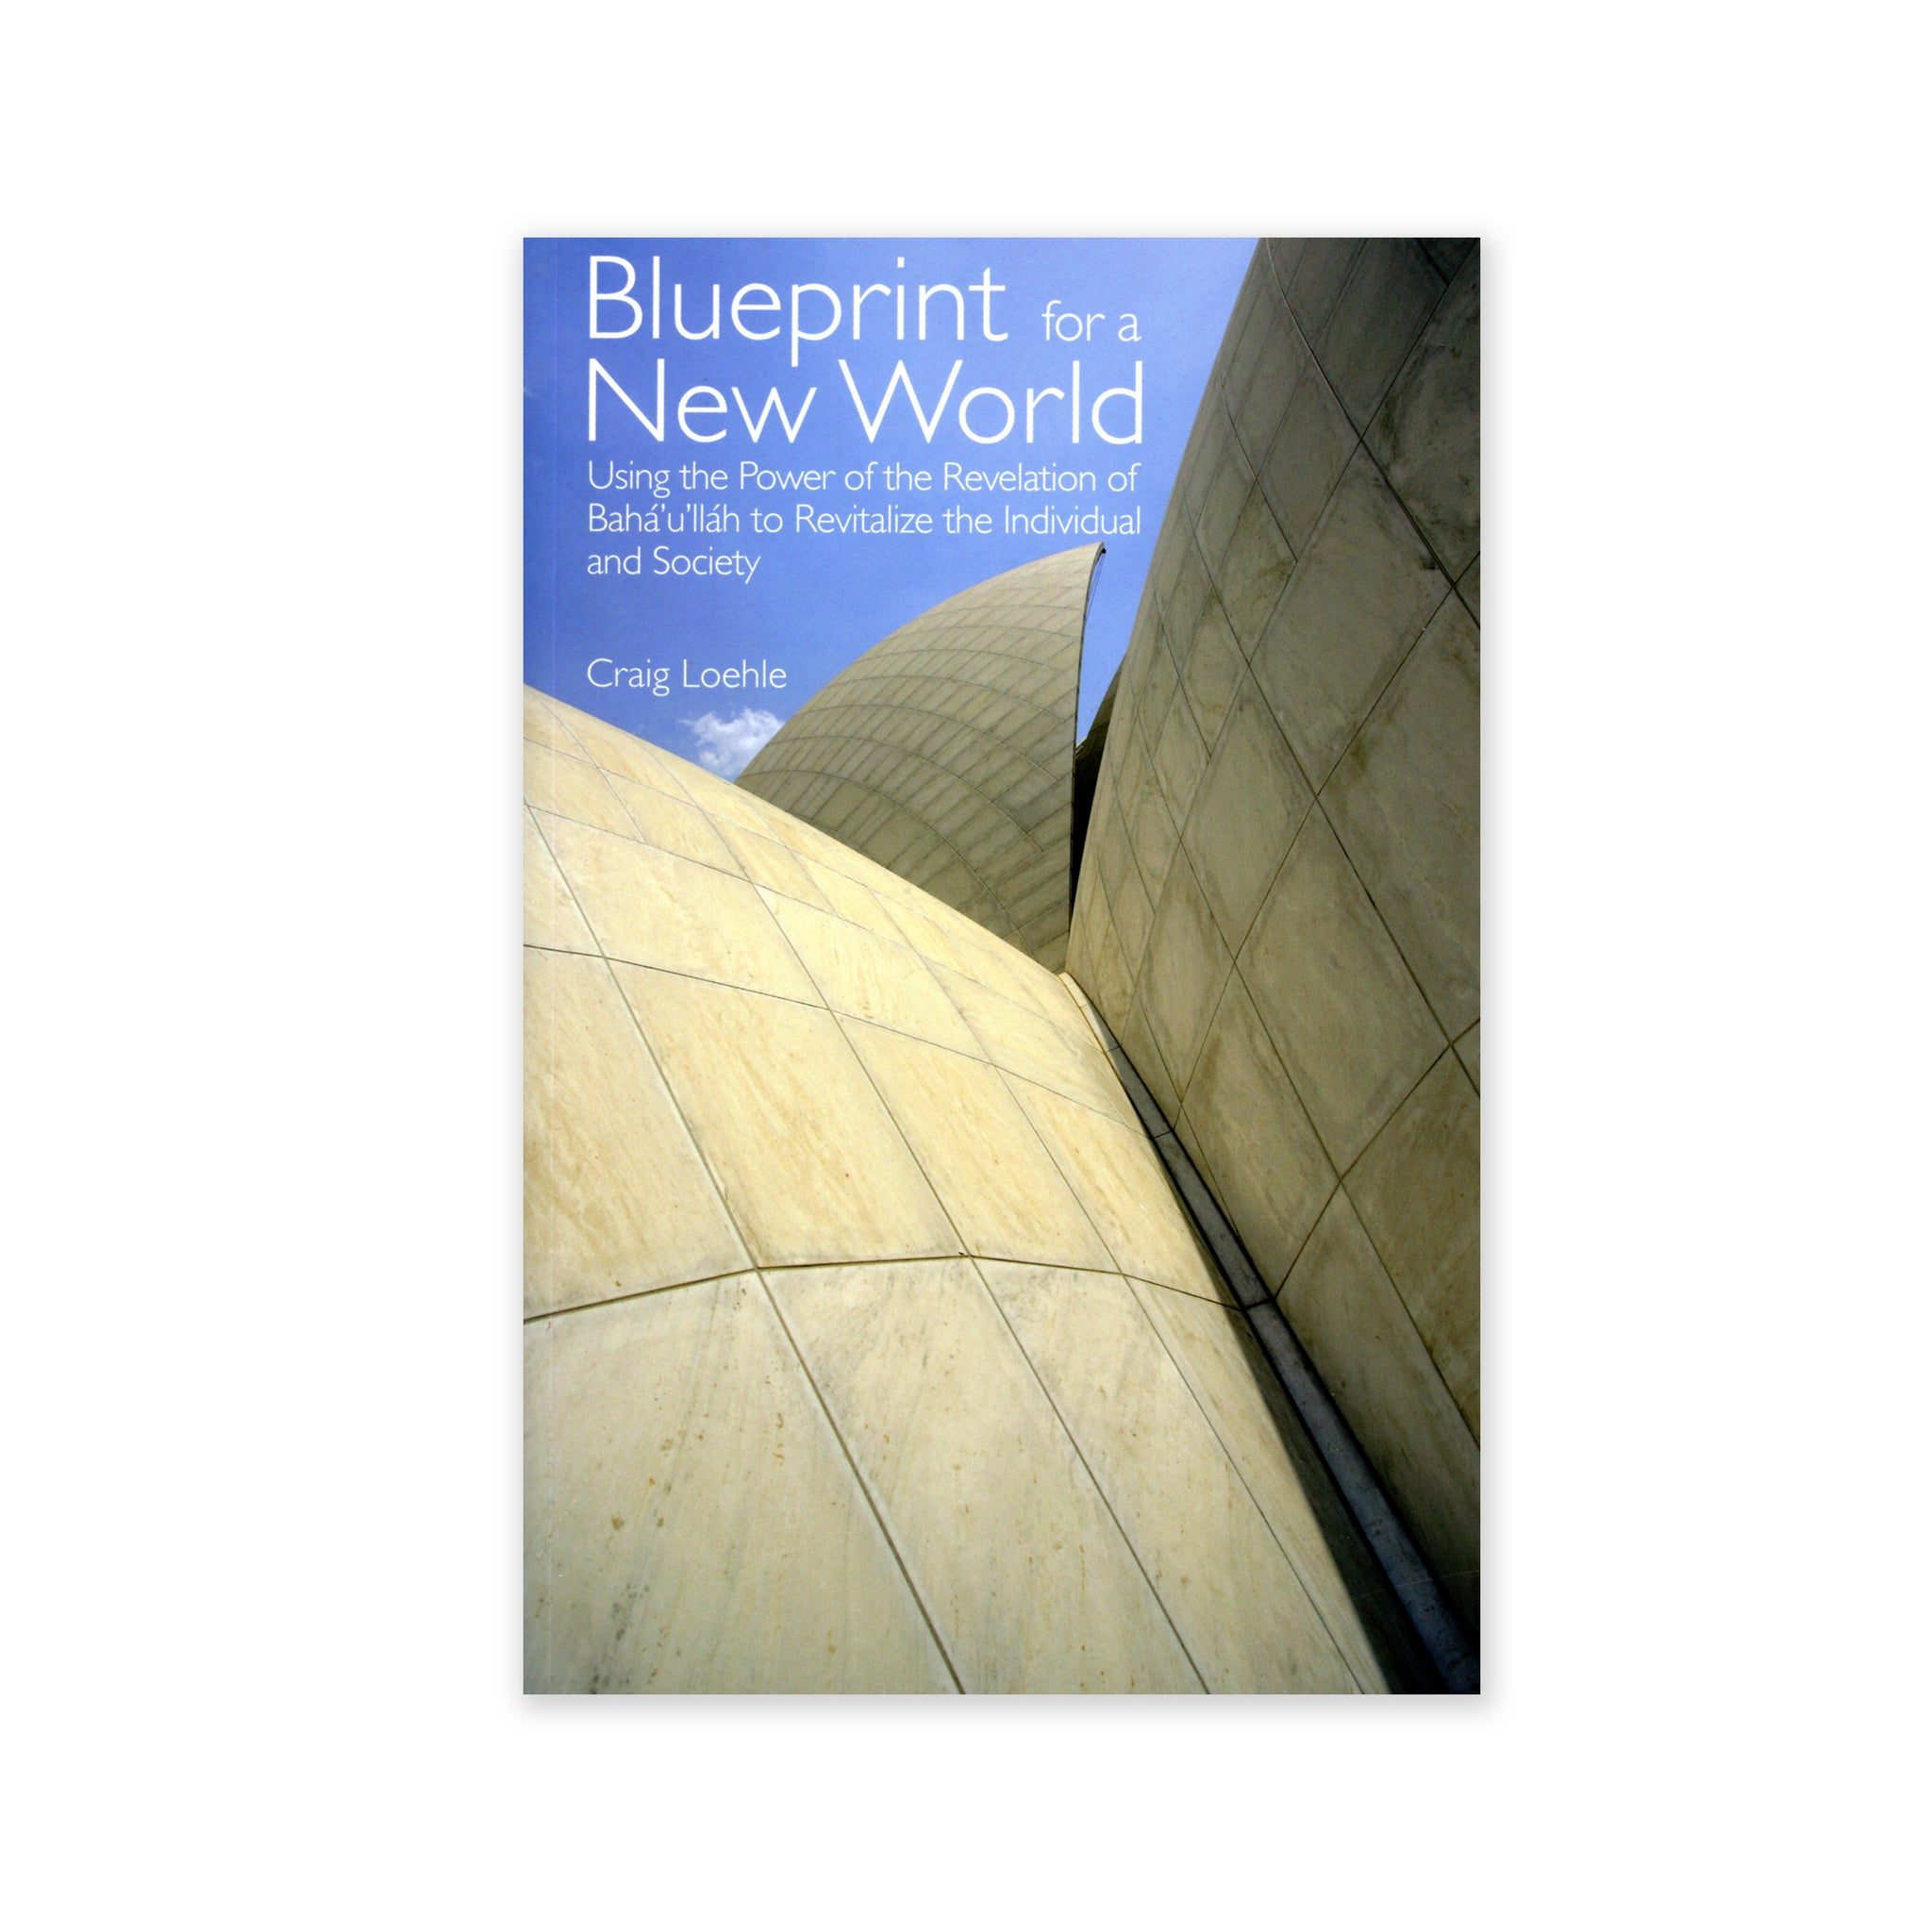 Blueprint for a New World - Using the Power of the Revelation of Baha'u'llah to Revitalize the Individual and Society